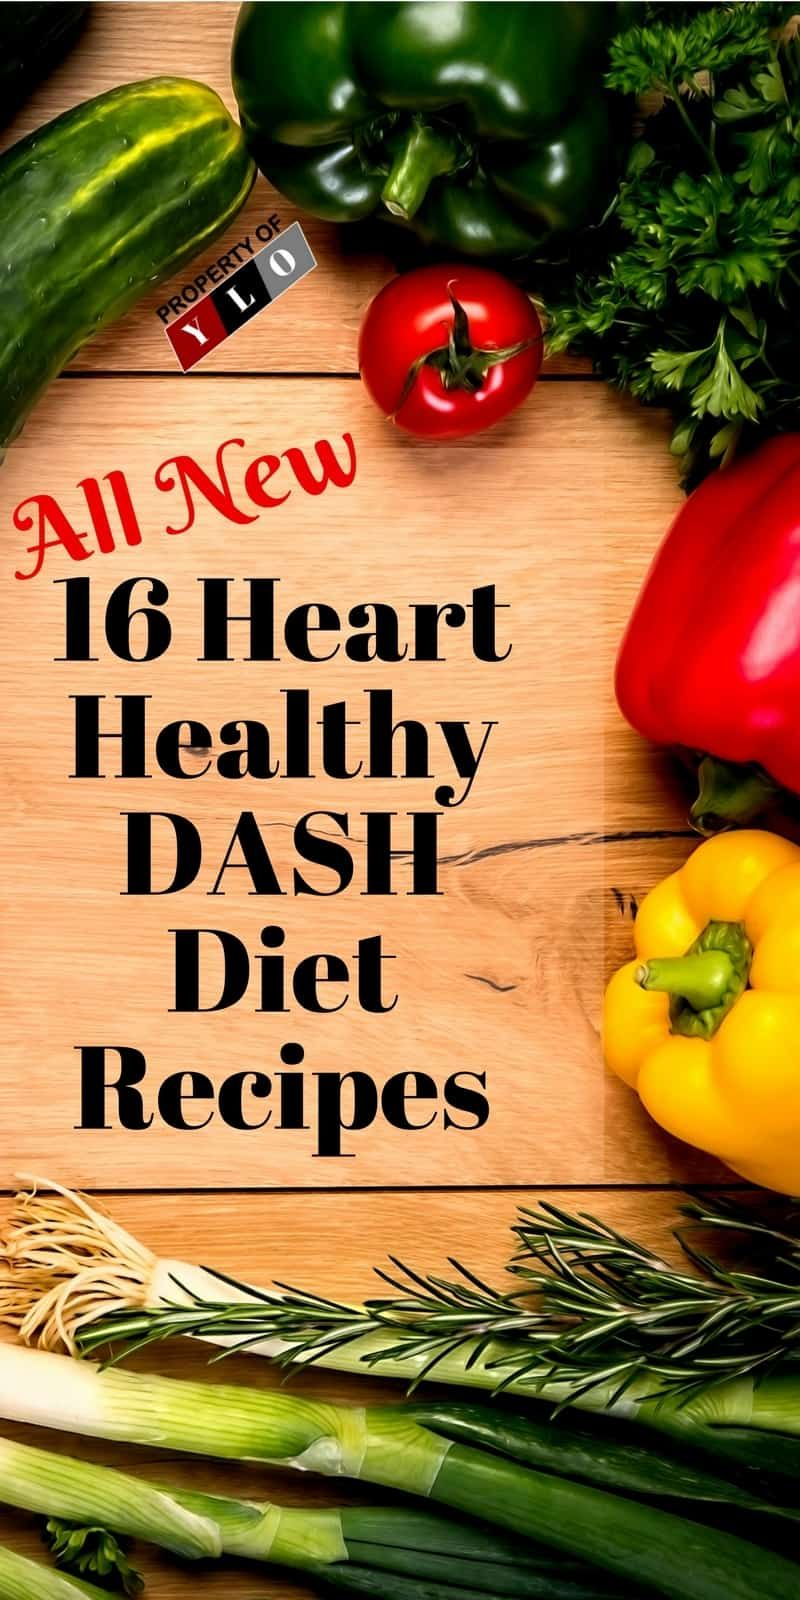 dash diet mat